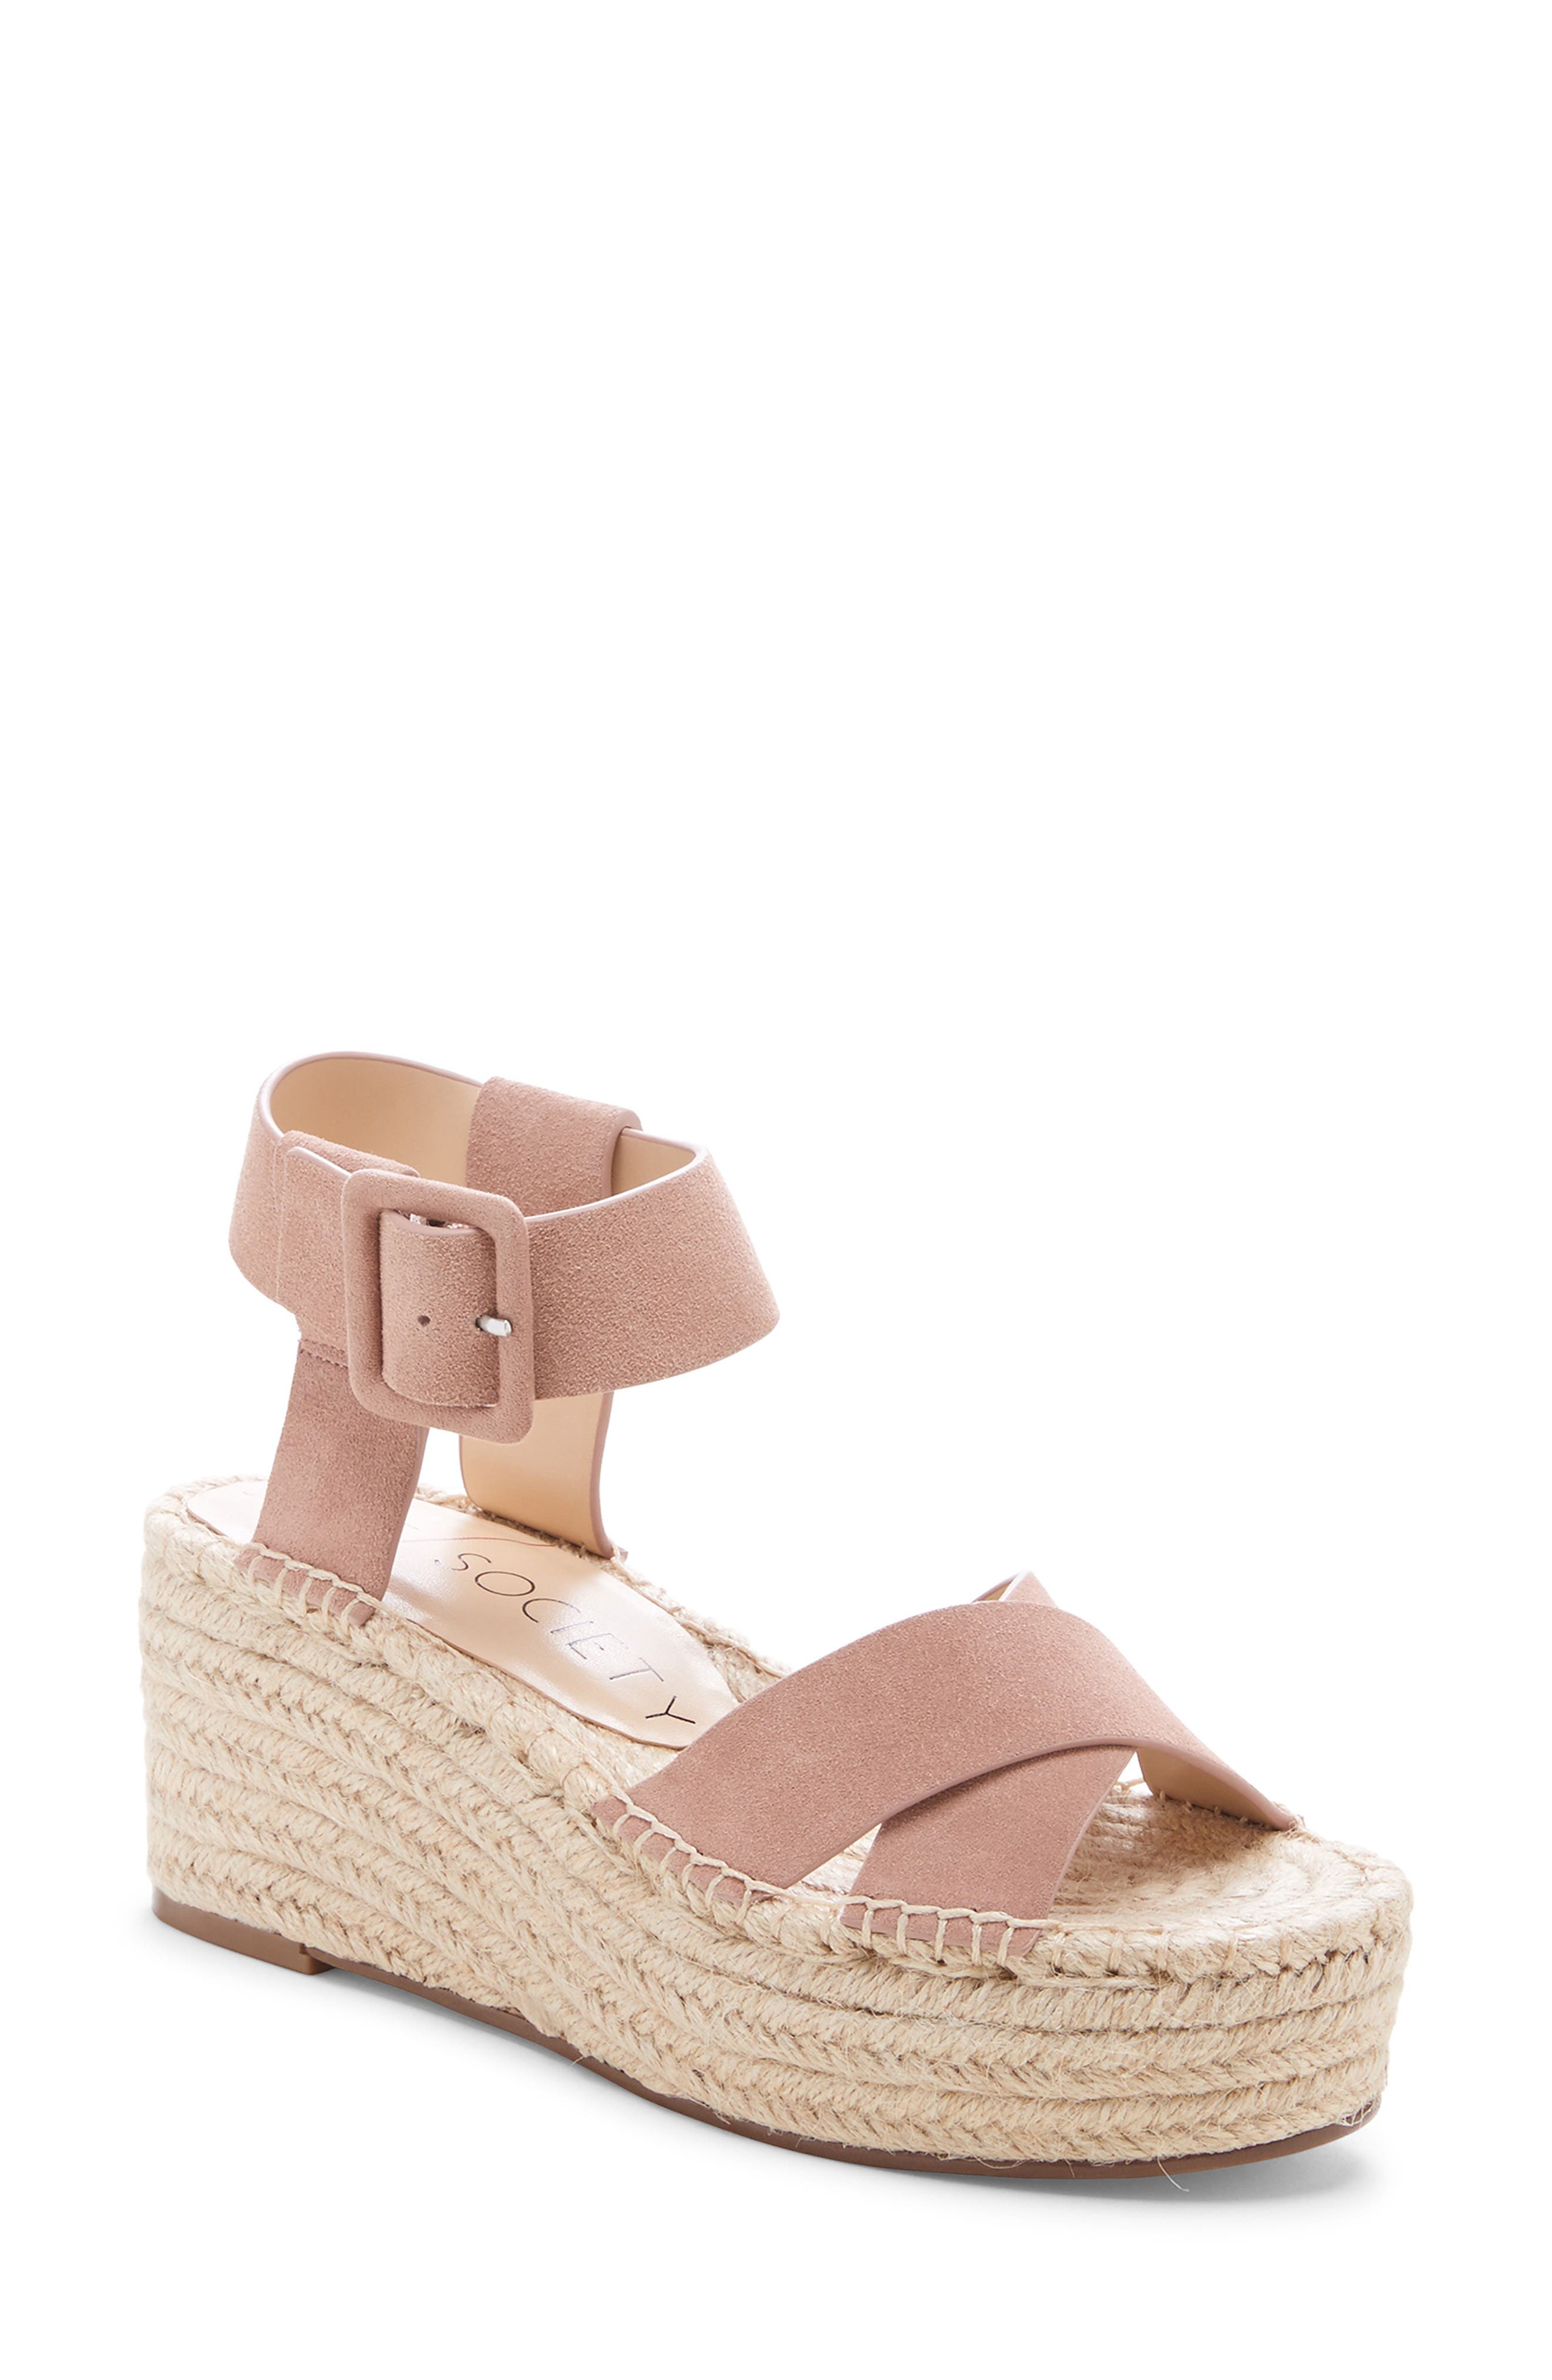 SOLE SOCIETY Audrina Platform Espadrille Sandal, Main, color, DUSTY ROSE SUEDE